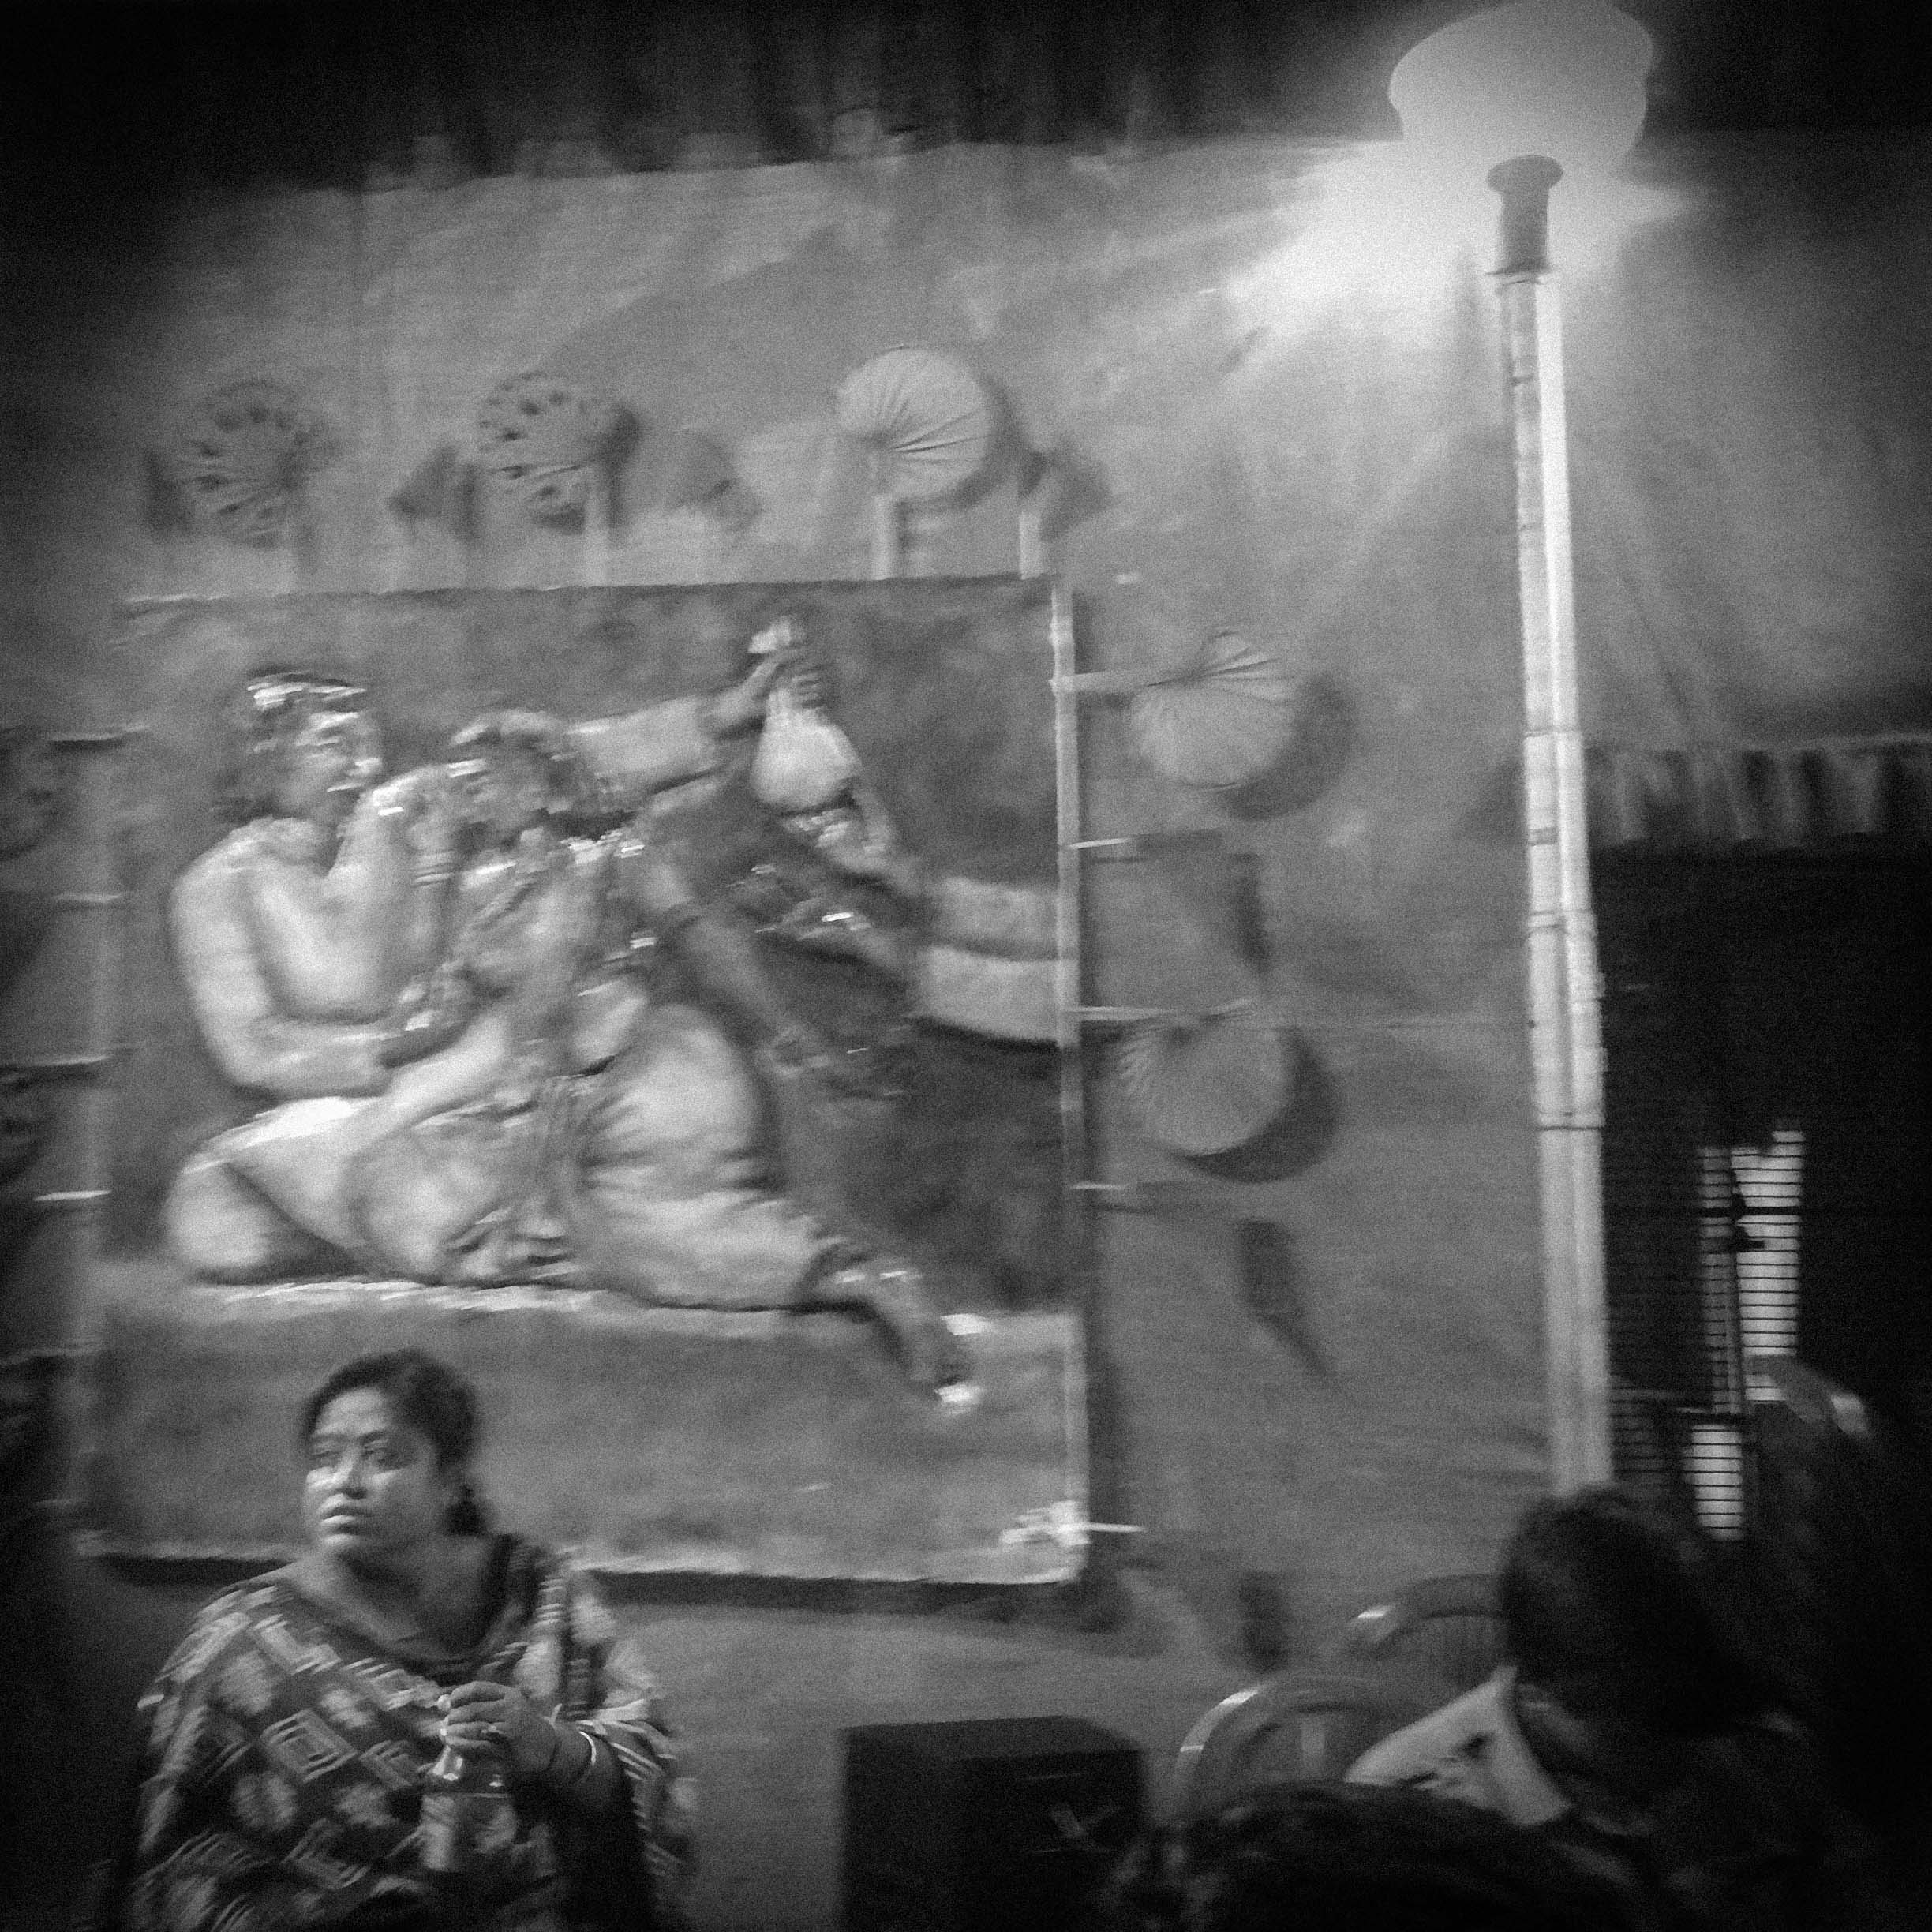 The murals adorning this pandal marked the distinction of this puja from the numerous small and big marquees dotting the city's lanes and by-lanes: they depicted scenes of violation, exploitation and extortion that members of the community are subjected to in the public spaces of the city they belong to, sweat and toil in but cannot call their own, despite the Indian government's granting of a 'third gender' identity to them, in passports most of them do not own and have no use for.